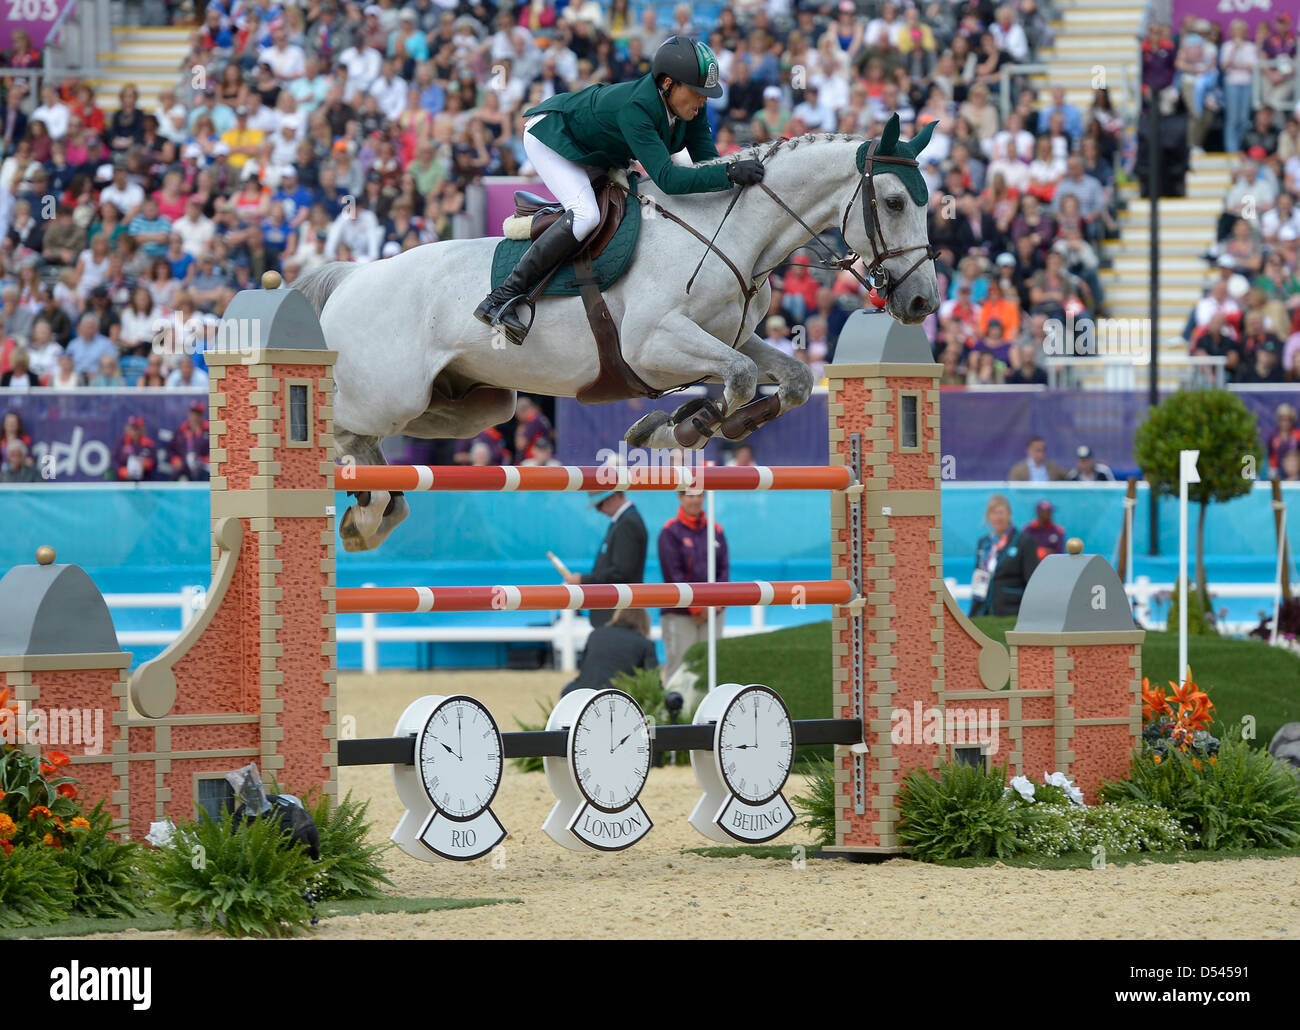 Abdullah Waleed Sharbatly riding Sultan (KSA, Saudi Arabia). Team Showjumping - Stock Image